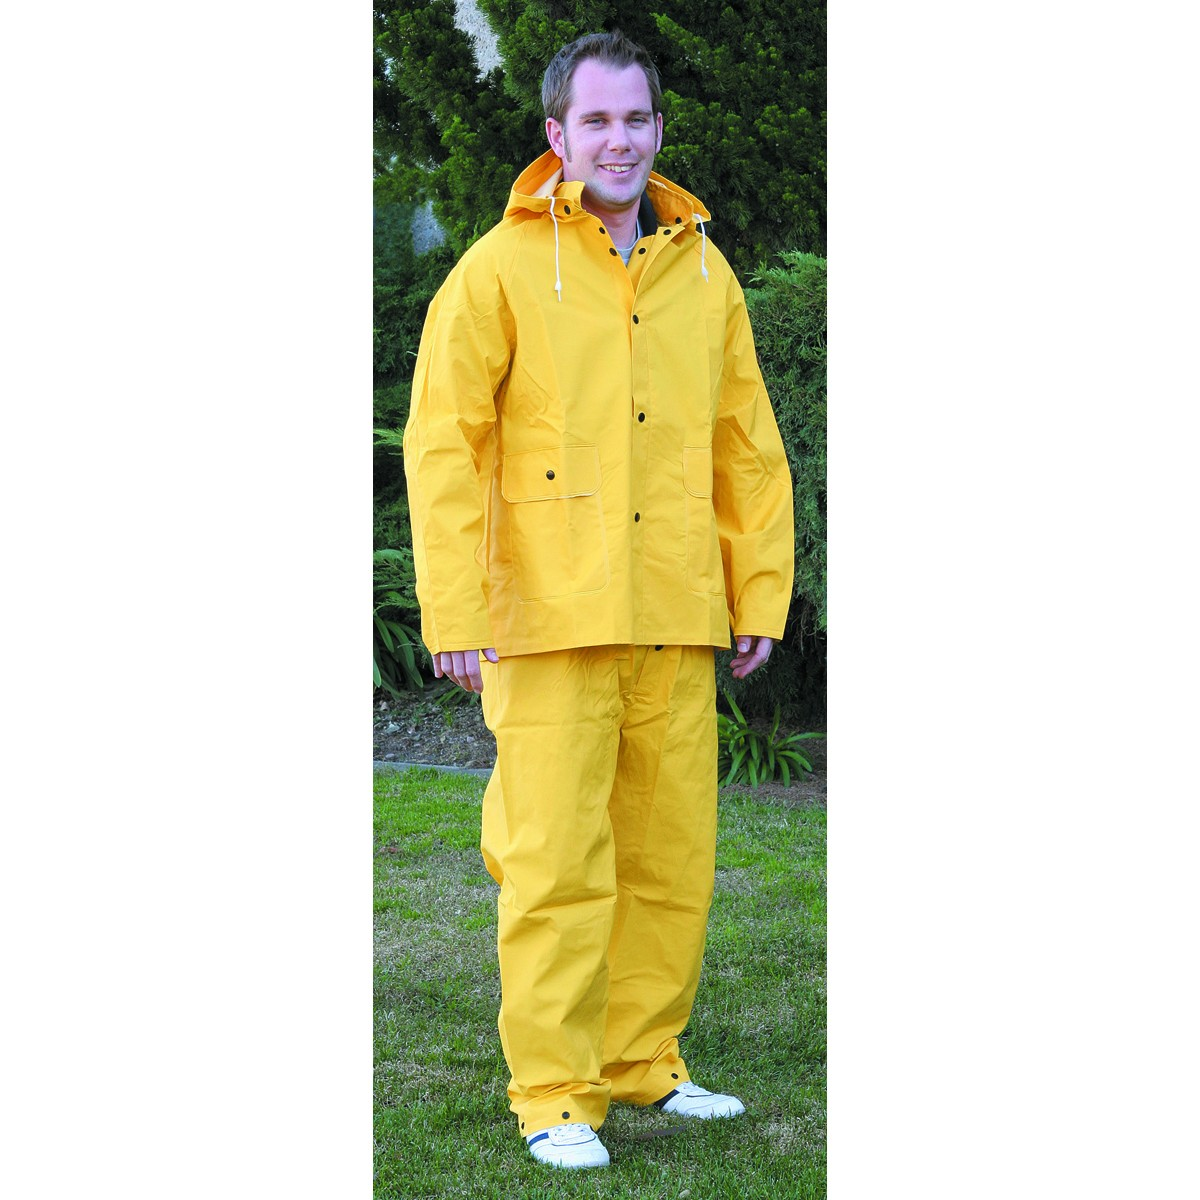 2 Piece Yellow Rain Suit, Large